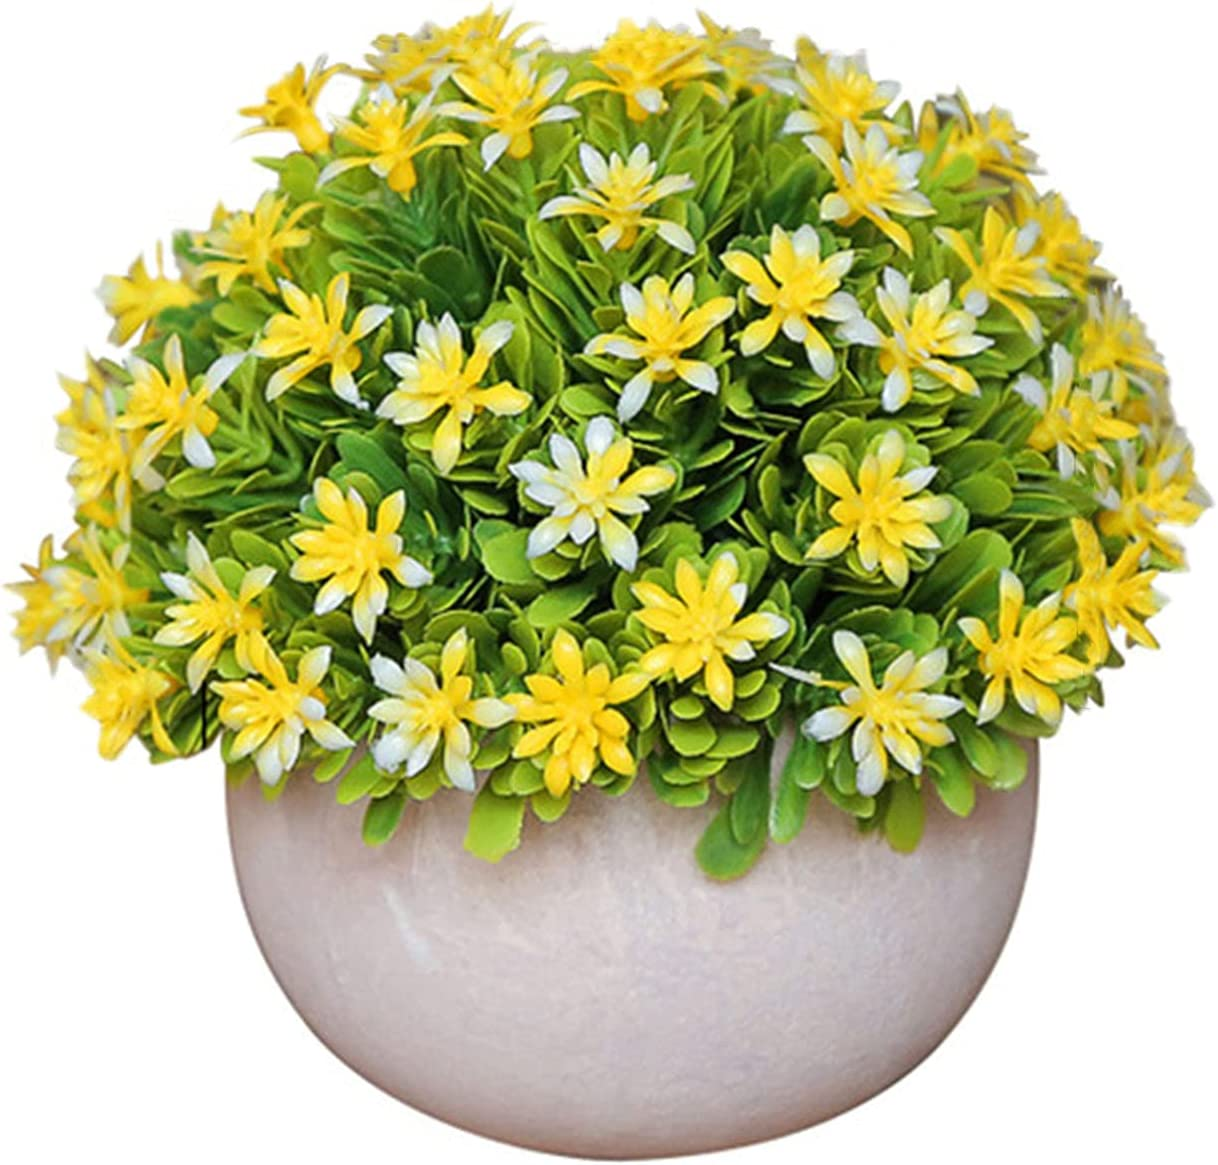 Dysetcs Popular standard 2 Packs Artificial Mini Potted Colorful Flo Max 56% OFF Flowers